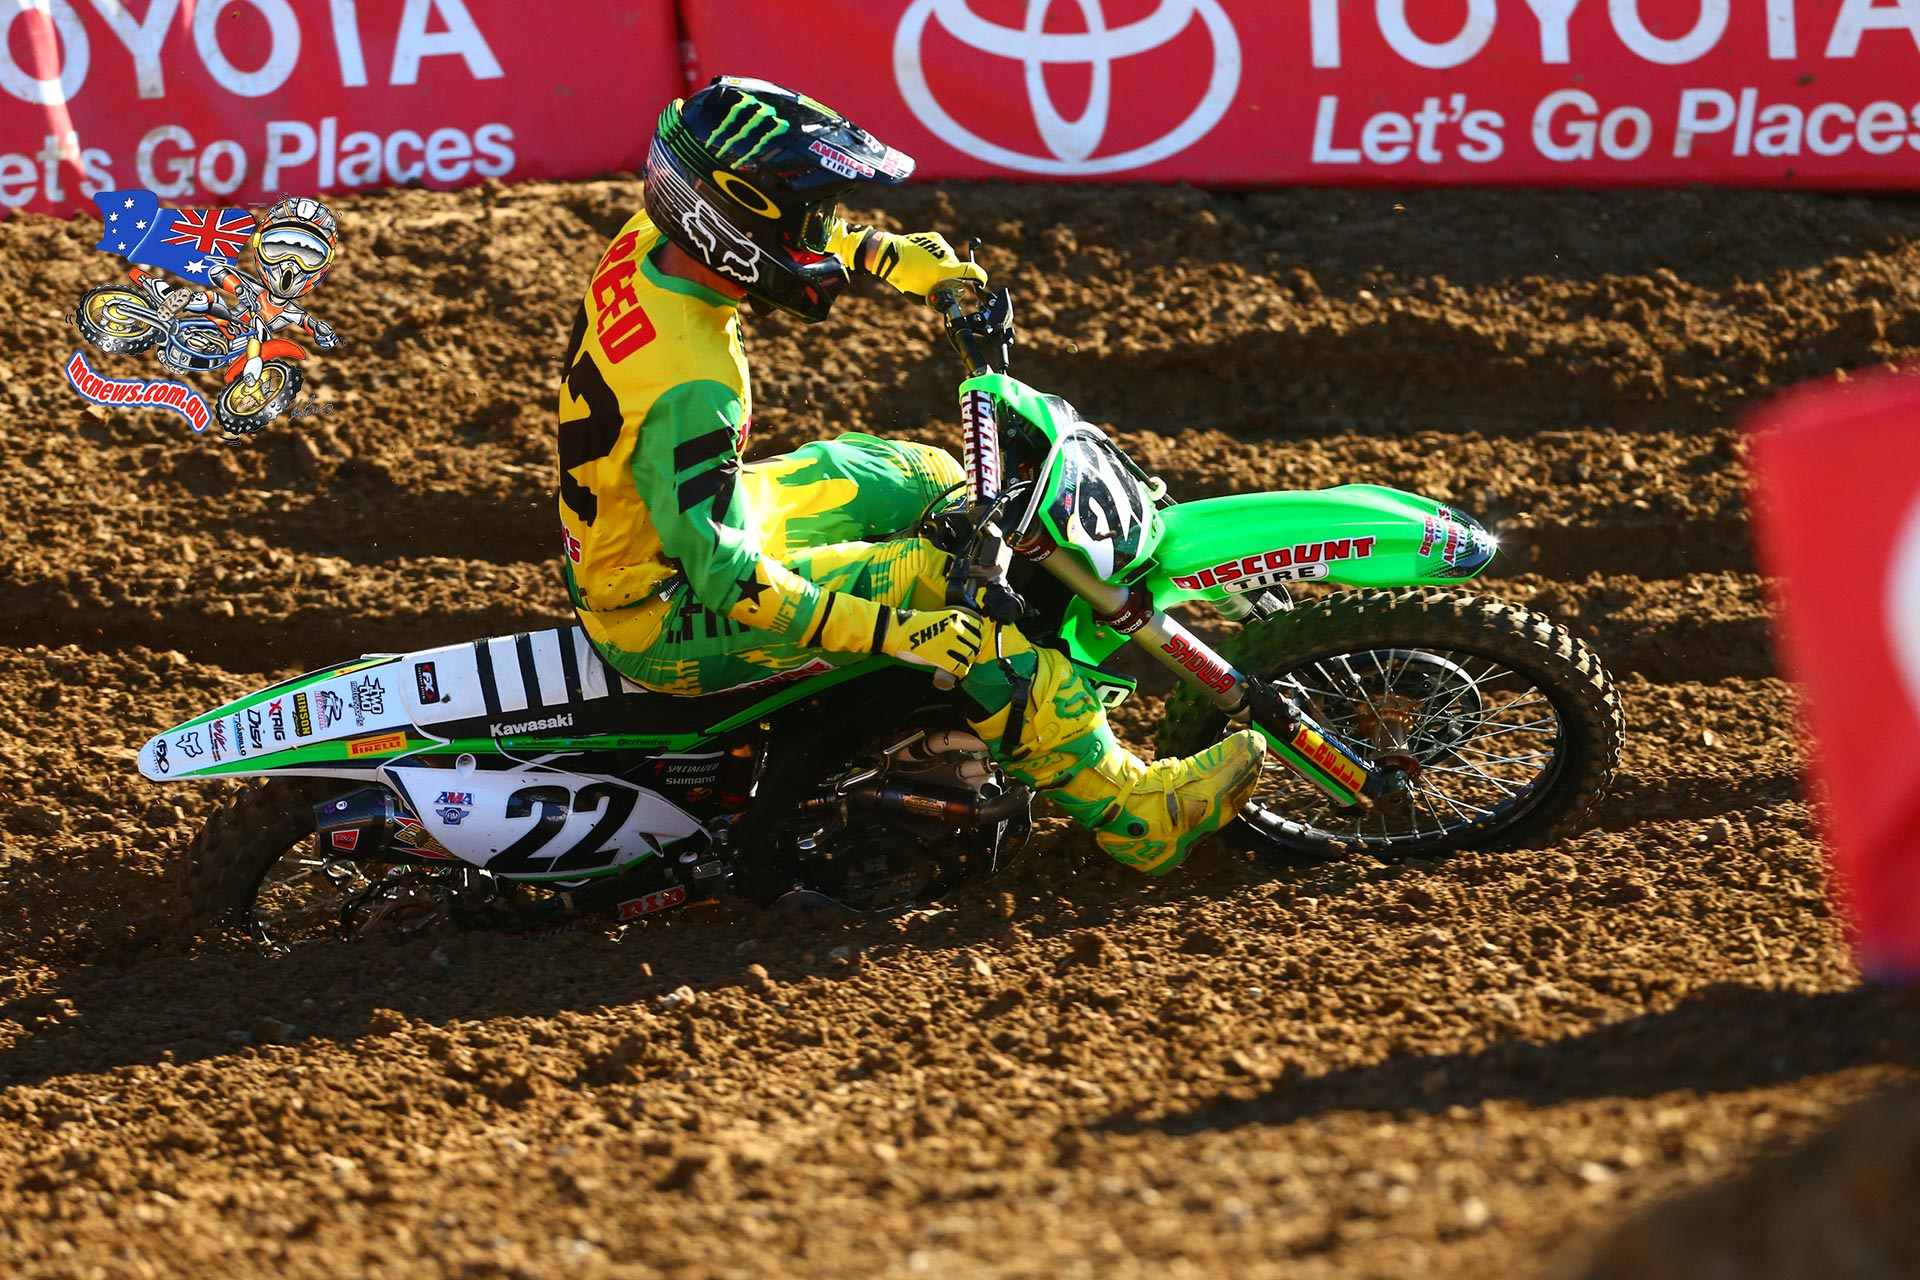 Chad Reed scored a solid third at Oakland